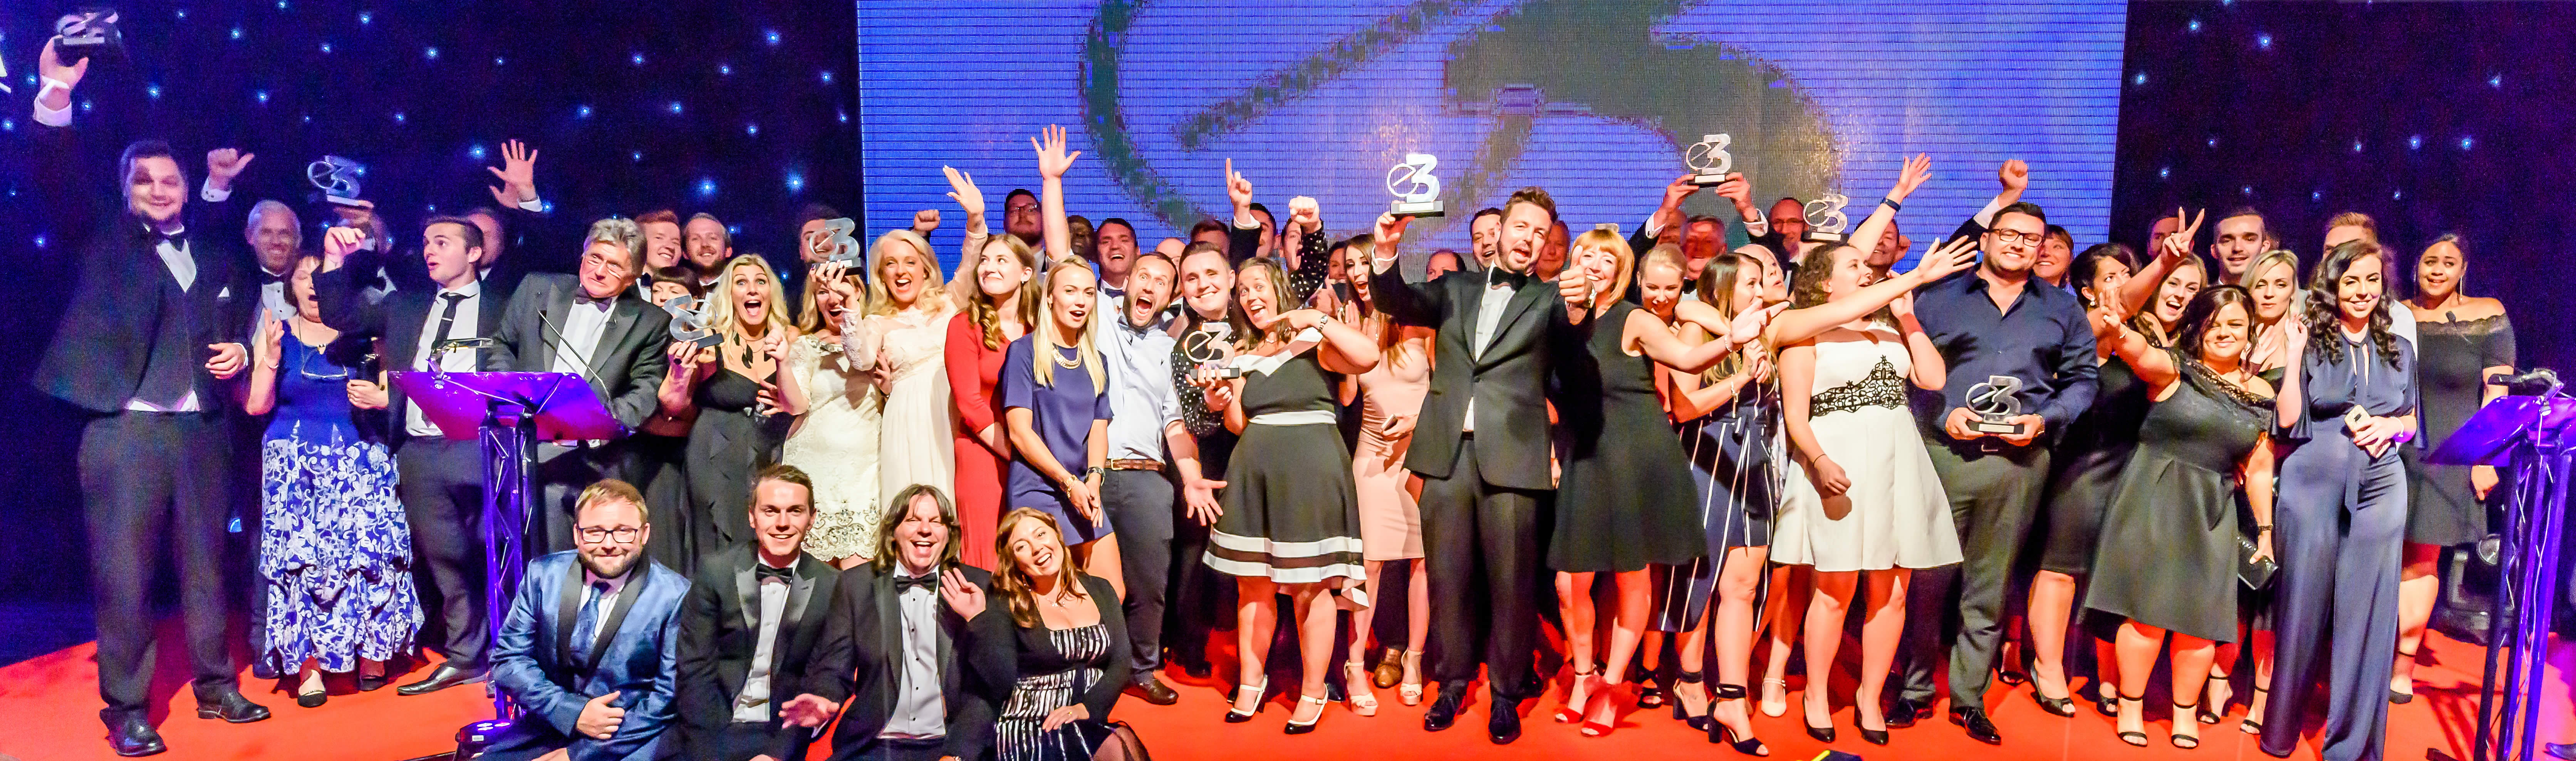 , E3 BUSINESS AWARDS 2018 – WINNERS ANNOUNCED, Skem News - The Top Source for Skelmersdale News